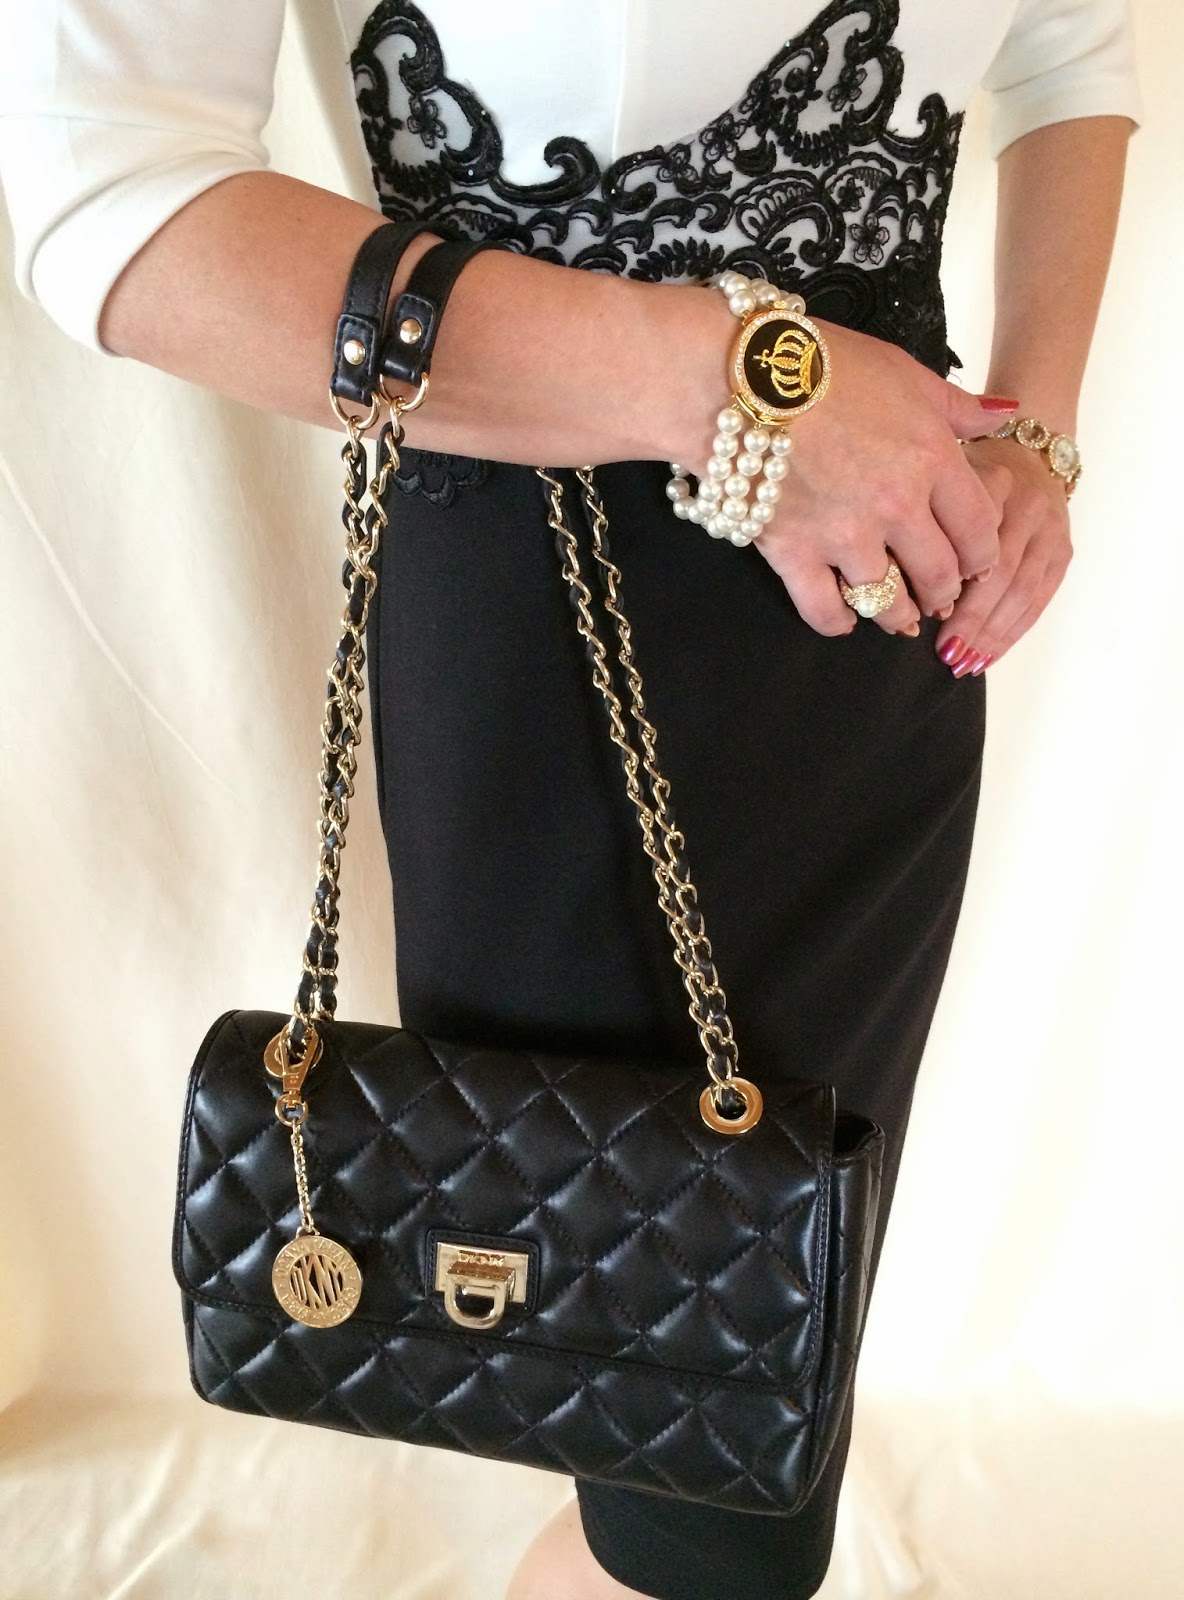 glamourous style dkny stepptasche mit kettenhenkel im chanel look. Black Bedroom Furniture Sets. Home Design Ideas